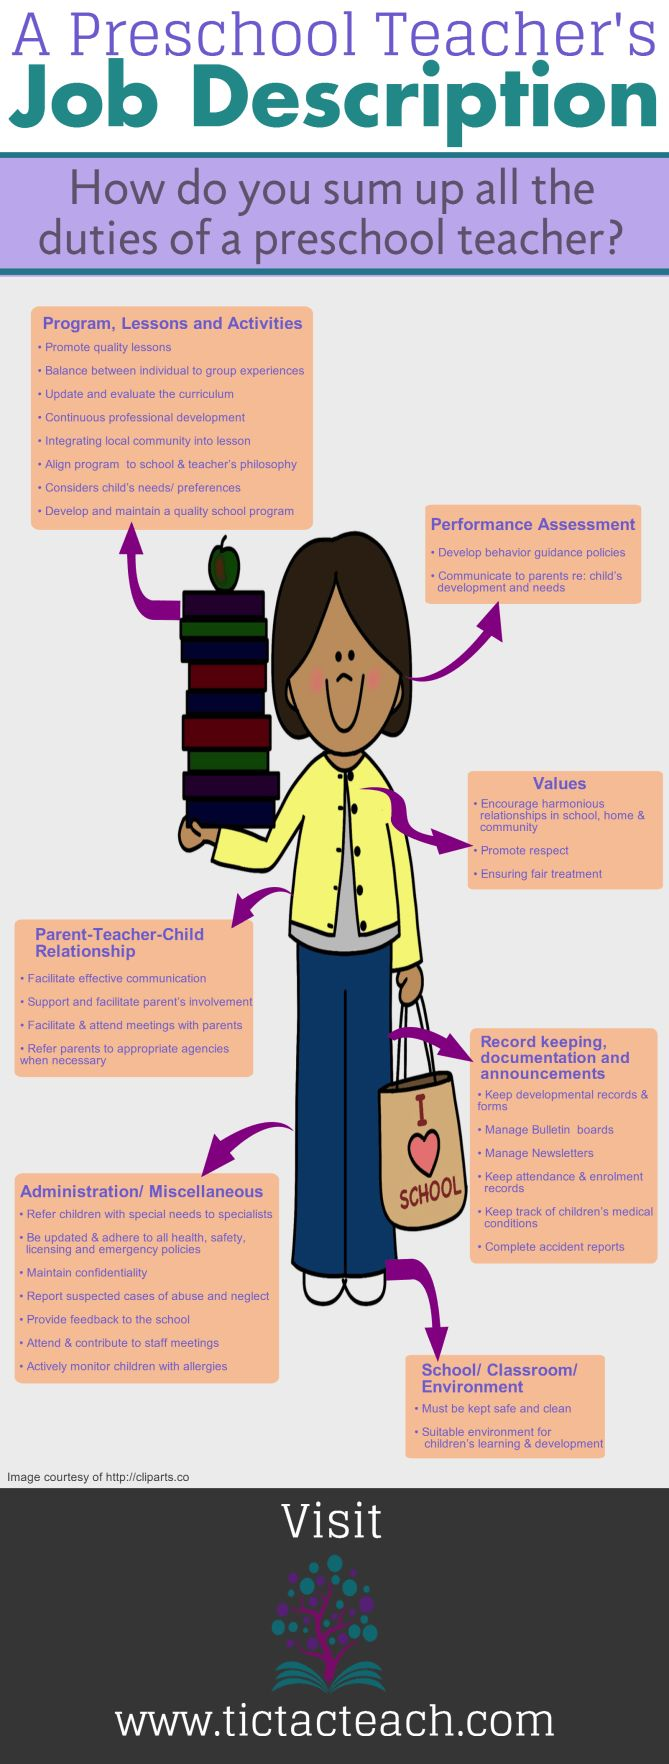 Preschool Teacher's job description infographic